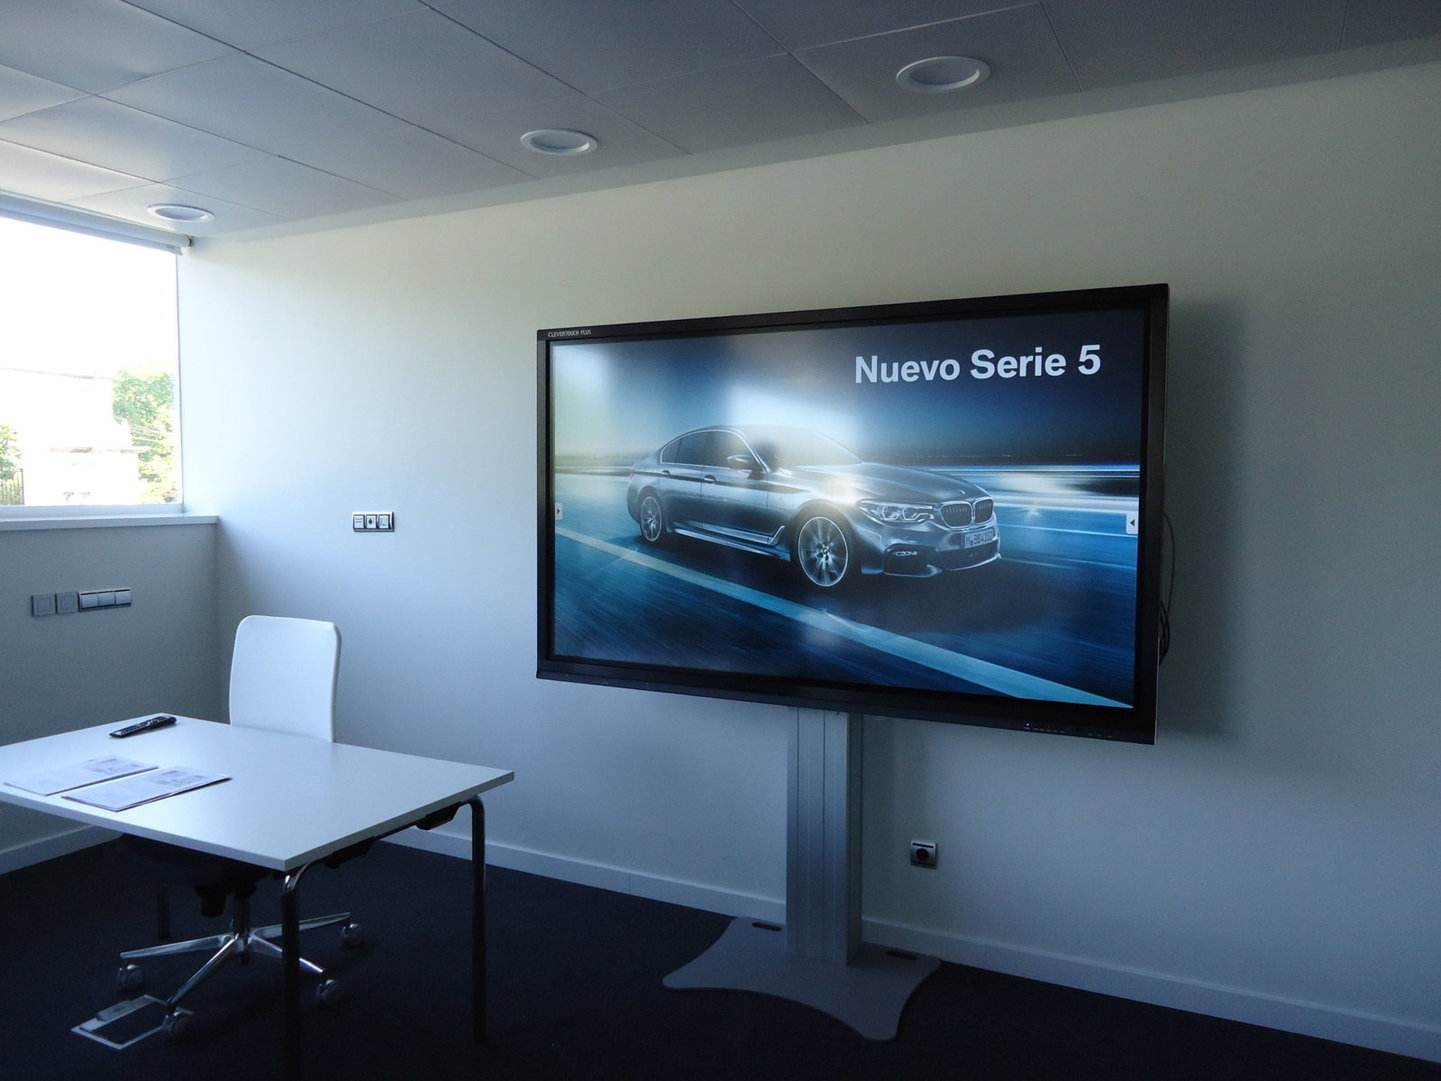 Charmex equips the new training facilities of BMW Ibérica